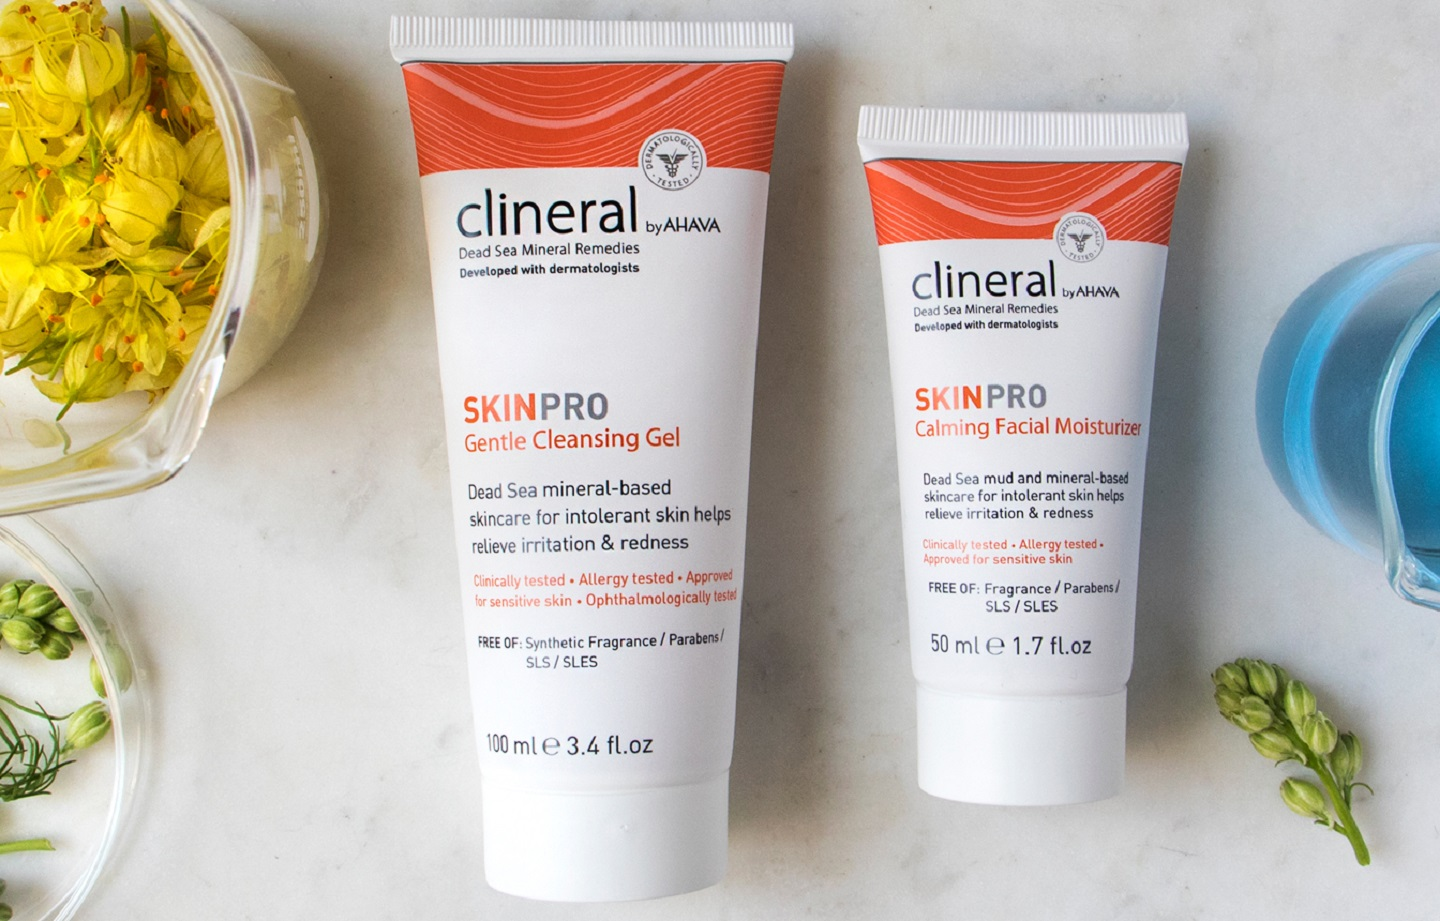 CLINERAL 2016 SKINPRO Calming Facial Moist 50ml 1500x15005